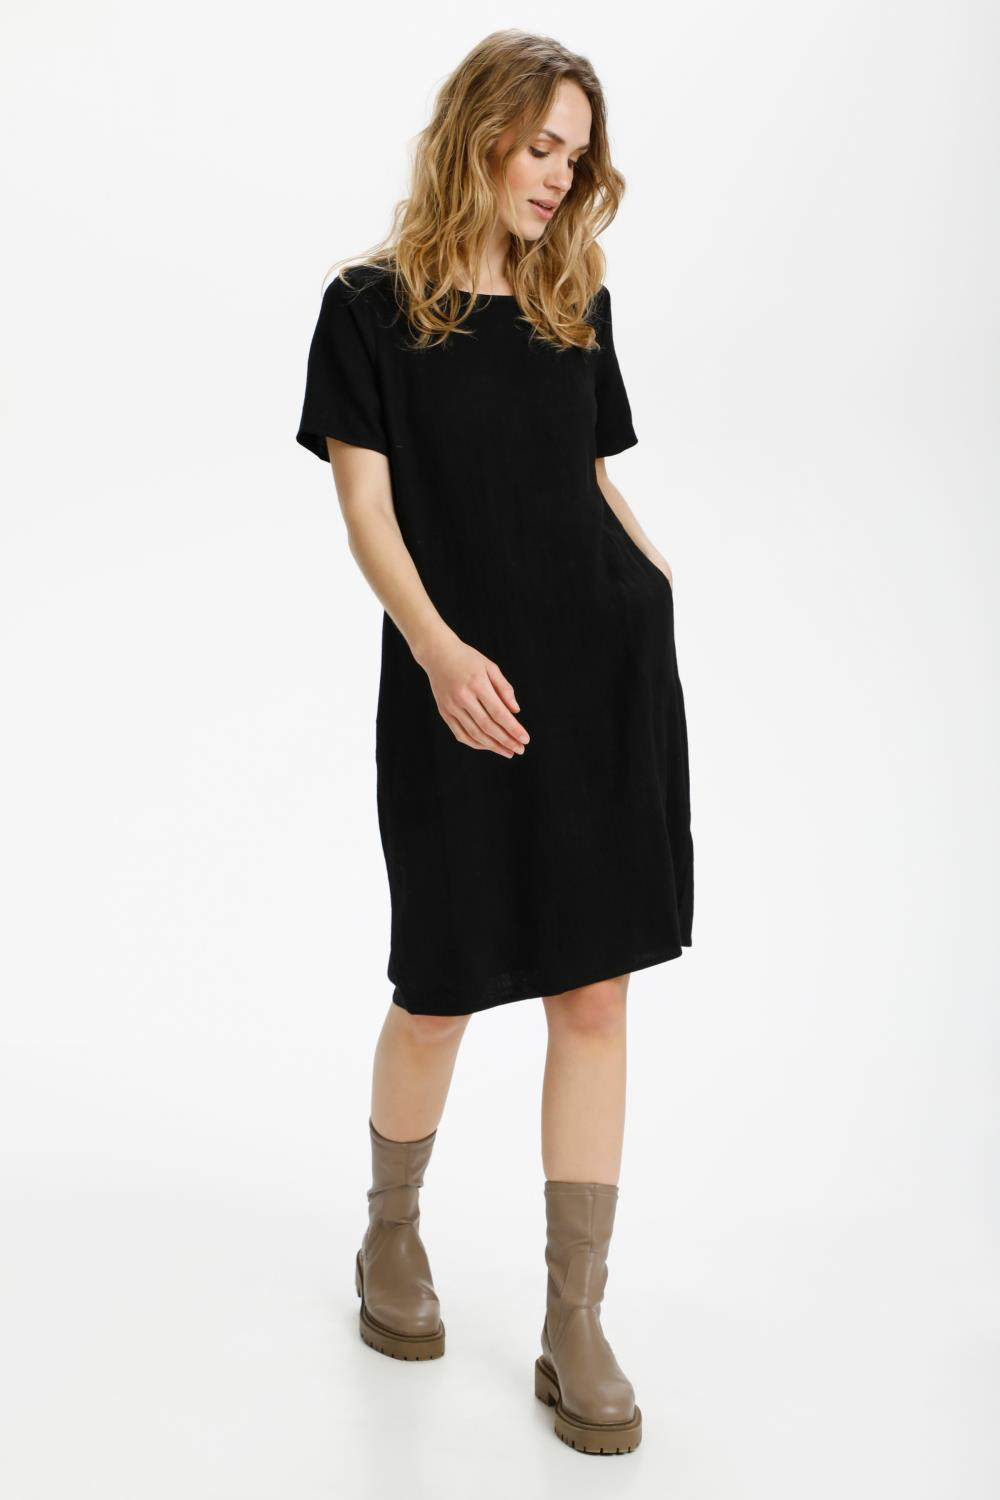 gallery-3820-for-10507531-black